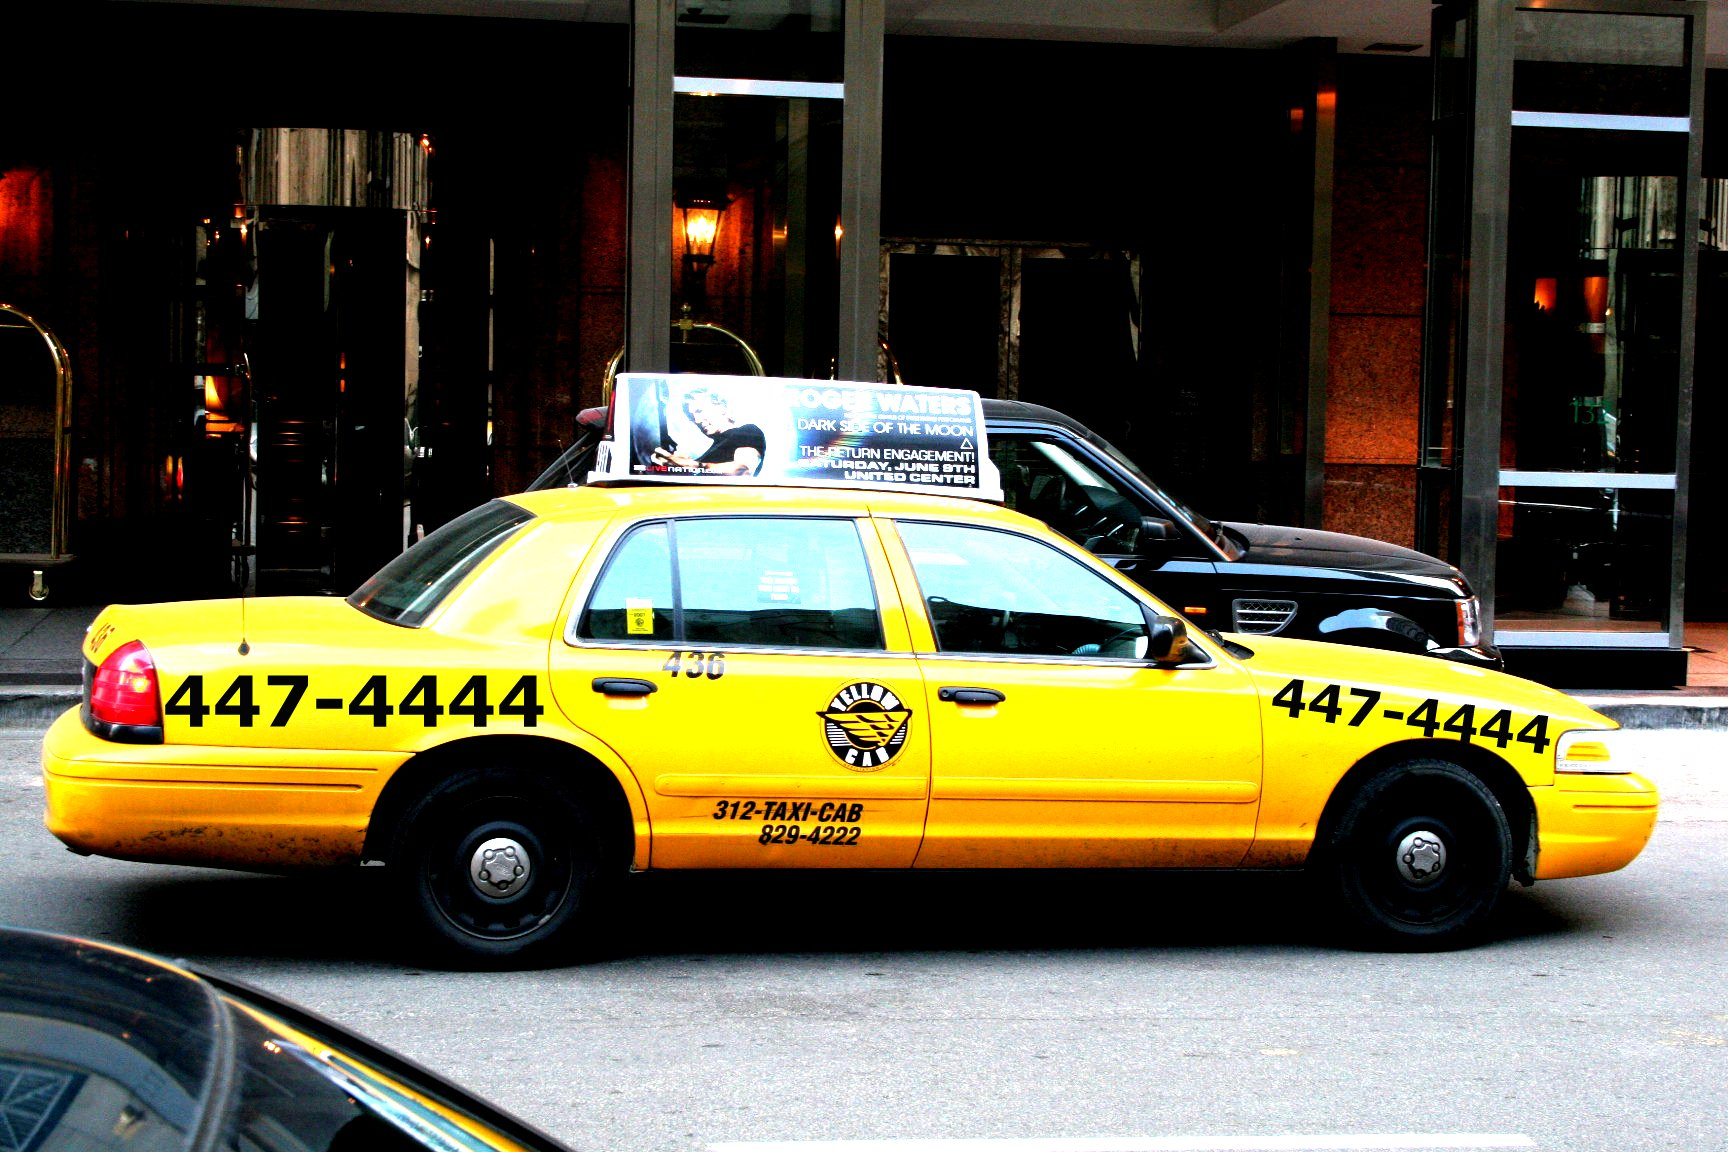 7777777 taxis